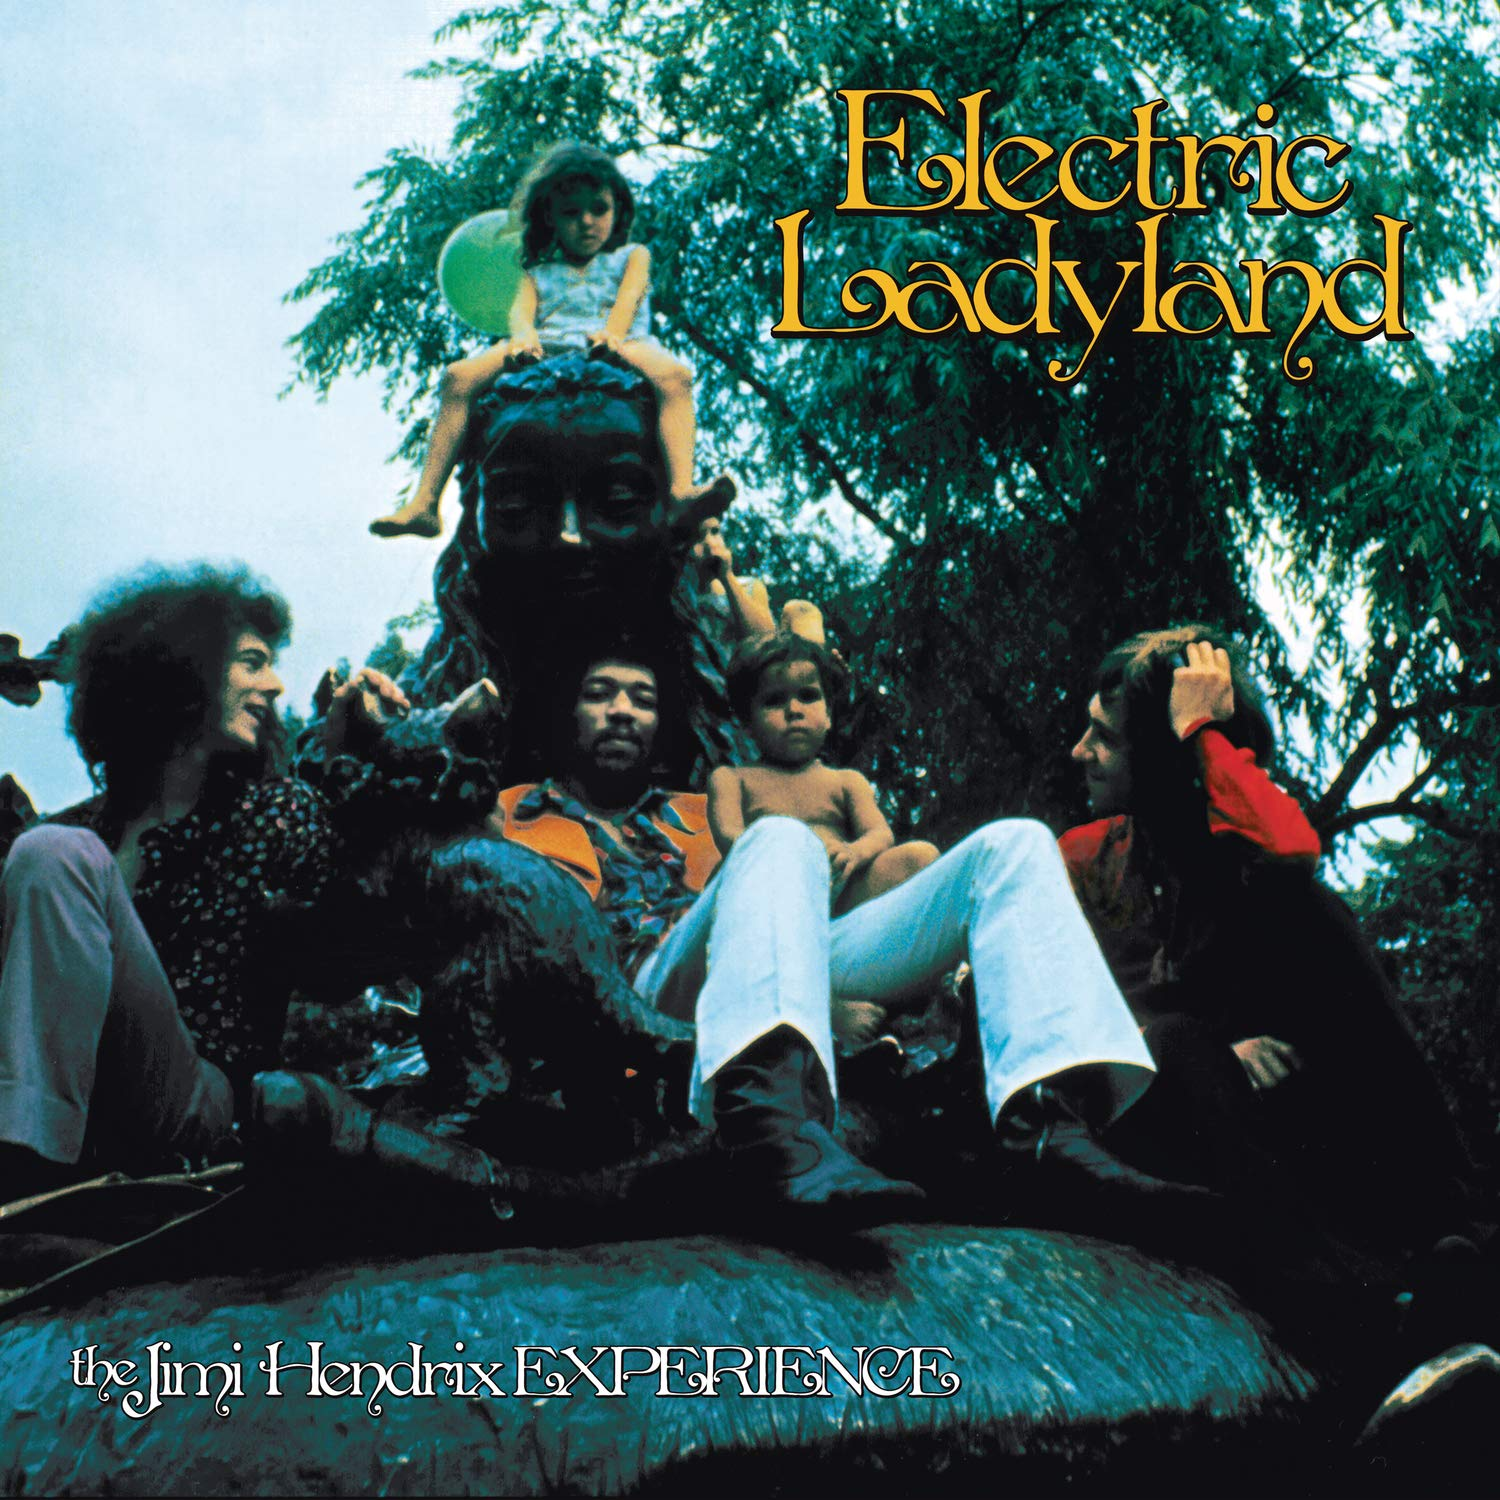 Vinilo : Jimi Hendrix - Electric Ladyland: 50th Anniversary Deluxe Edition (With Blu-ray, Boxed Set, Deluxe Edition, Anniversary Edition, Oversize Item Split)